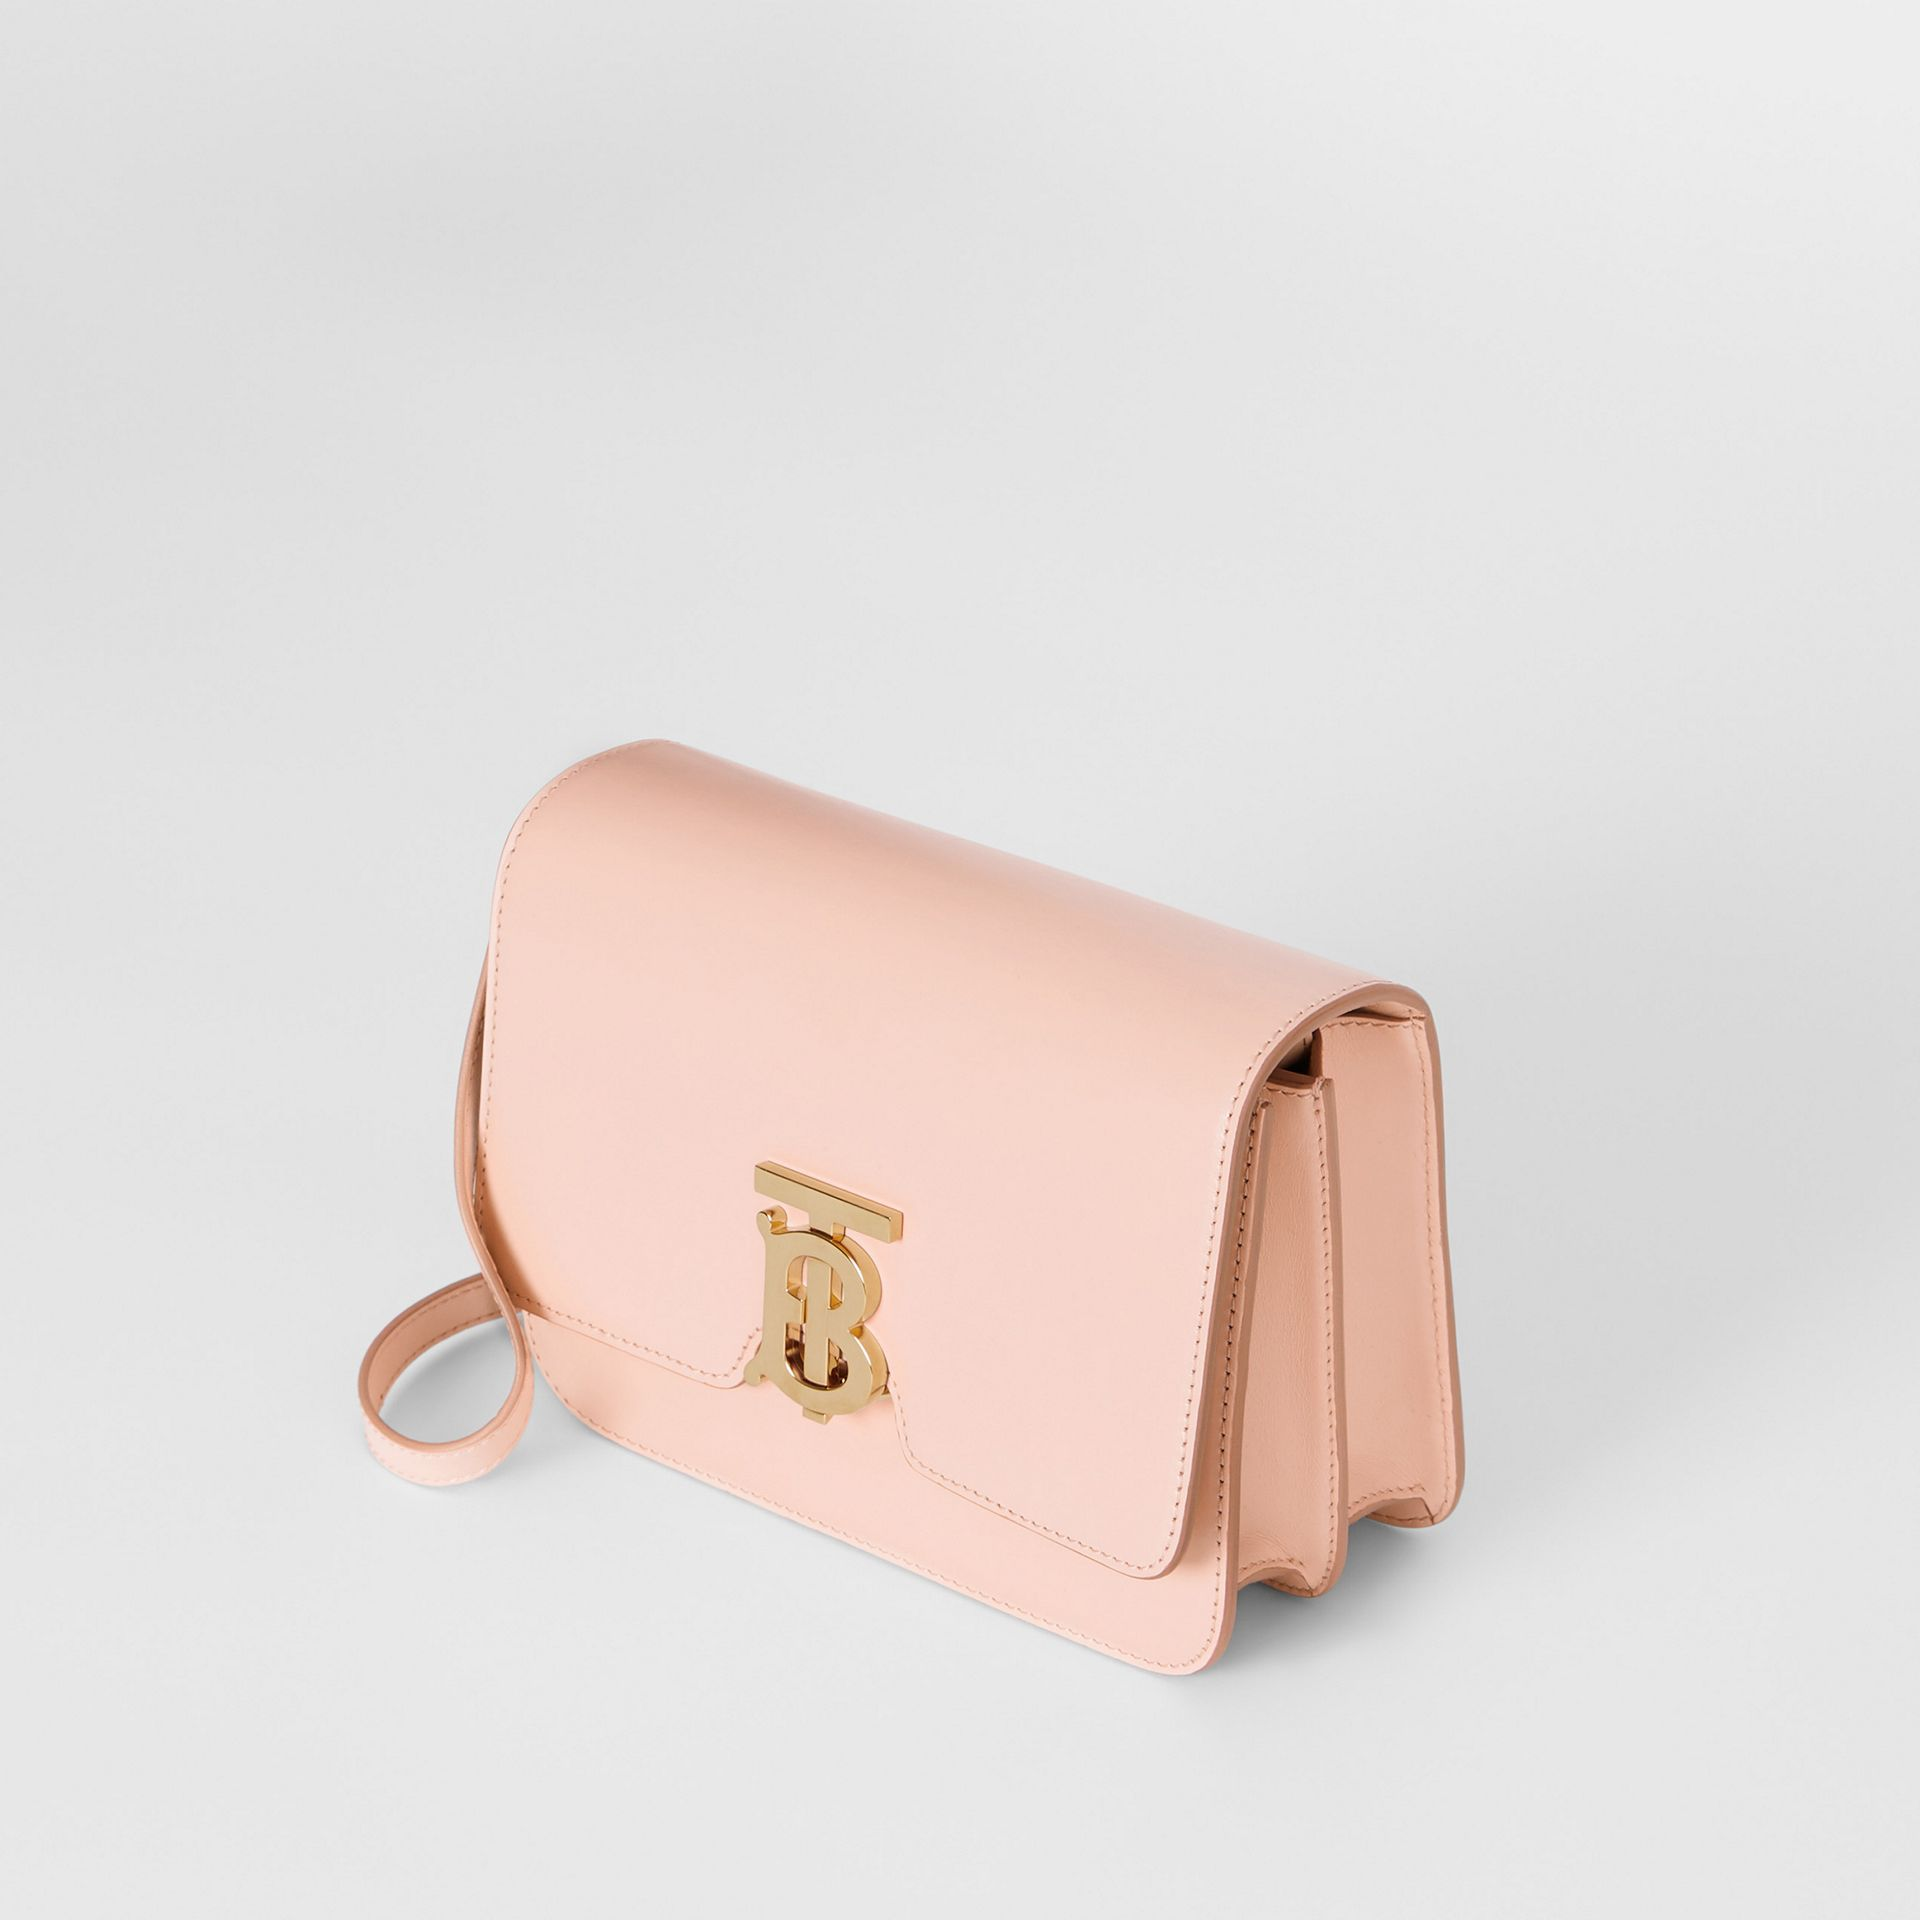 Petit sac TB en cuir (Beige Rose) - Femme | Burberry - photo de la galerie 3